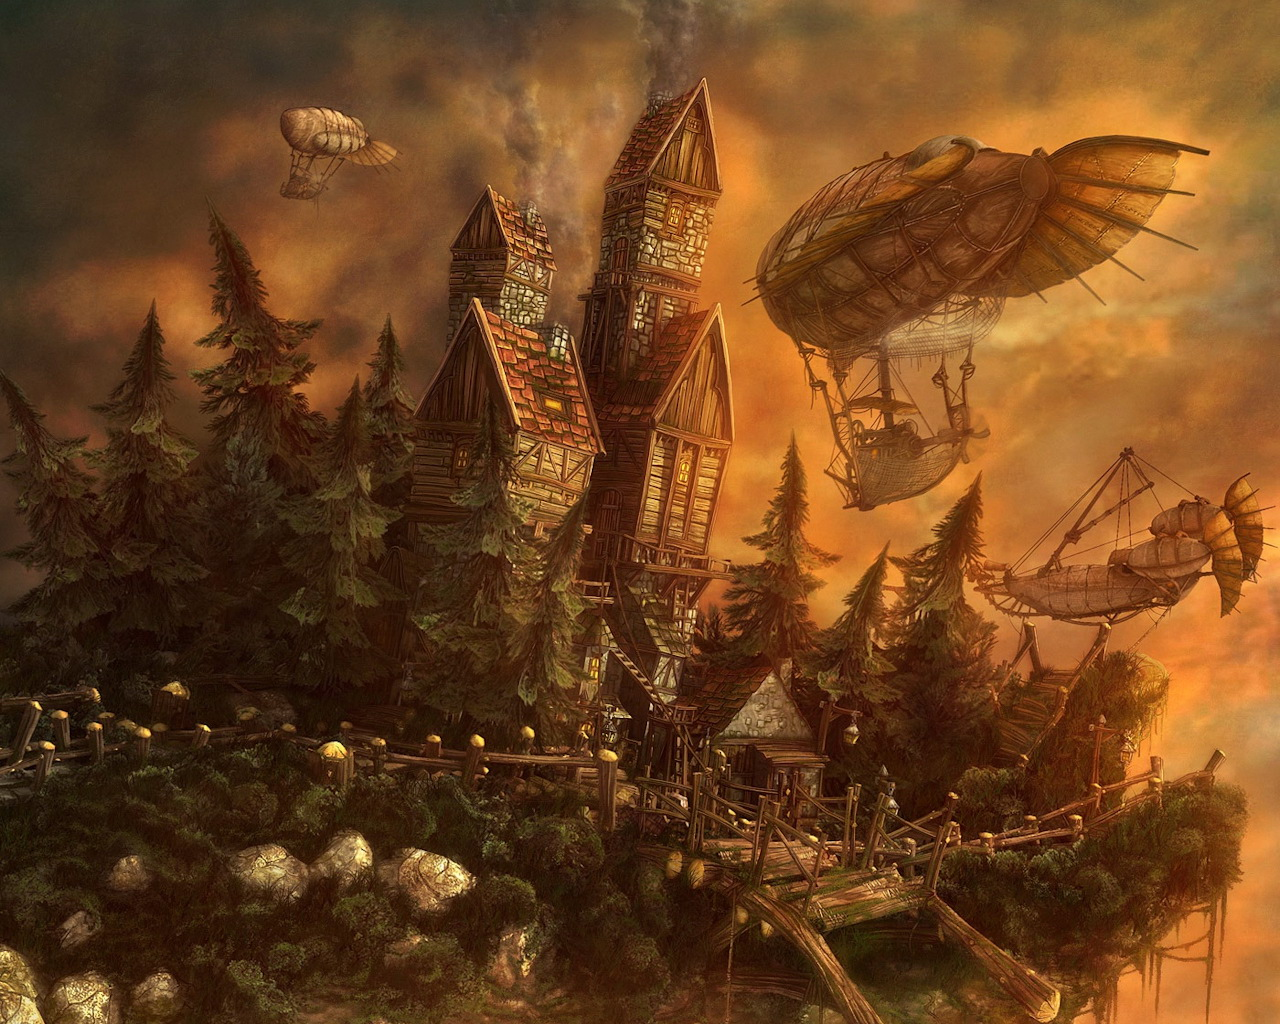 Free 3D Wallpapers Download Final Fantasy Wallpapers